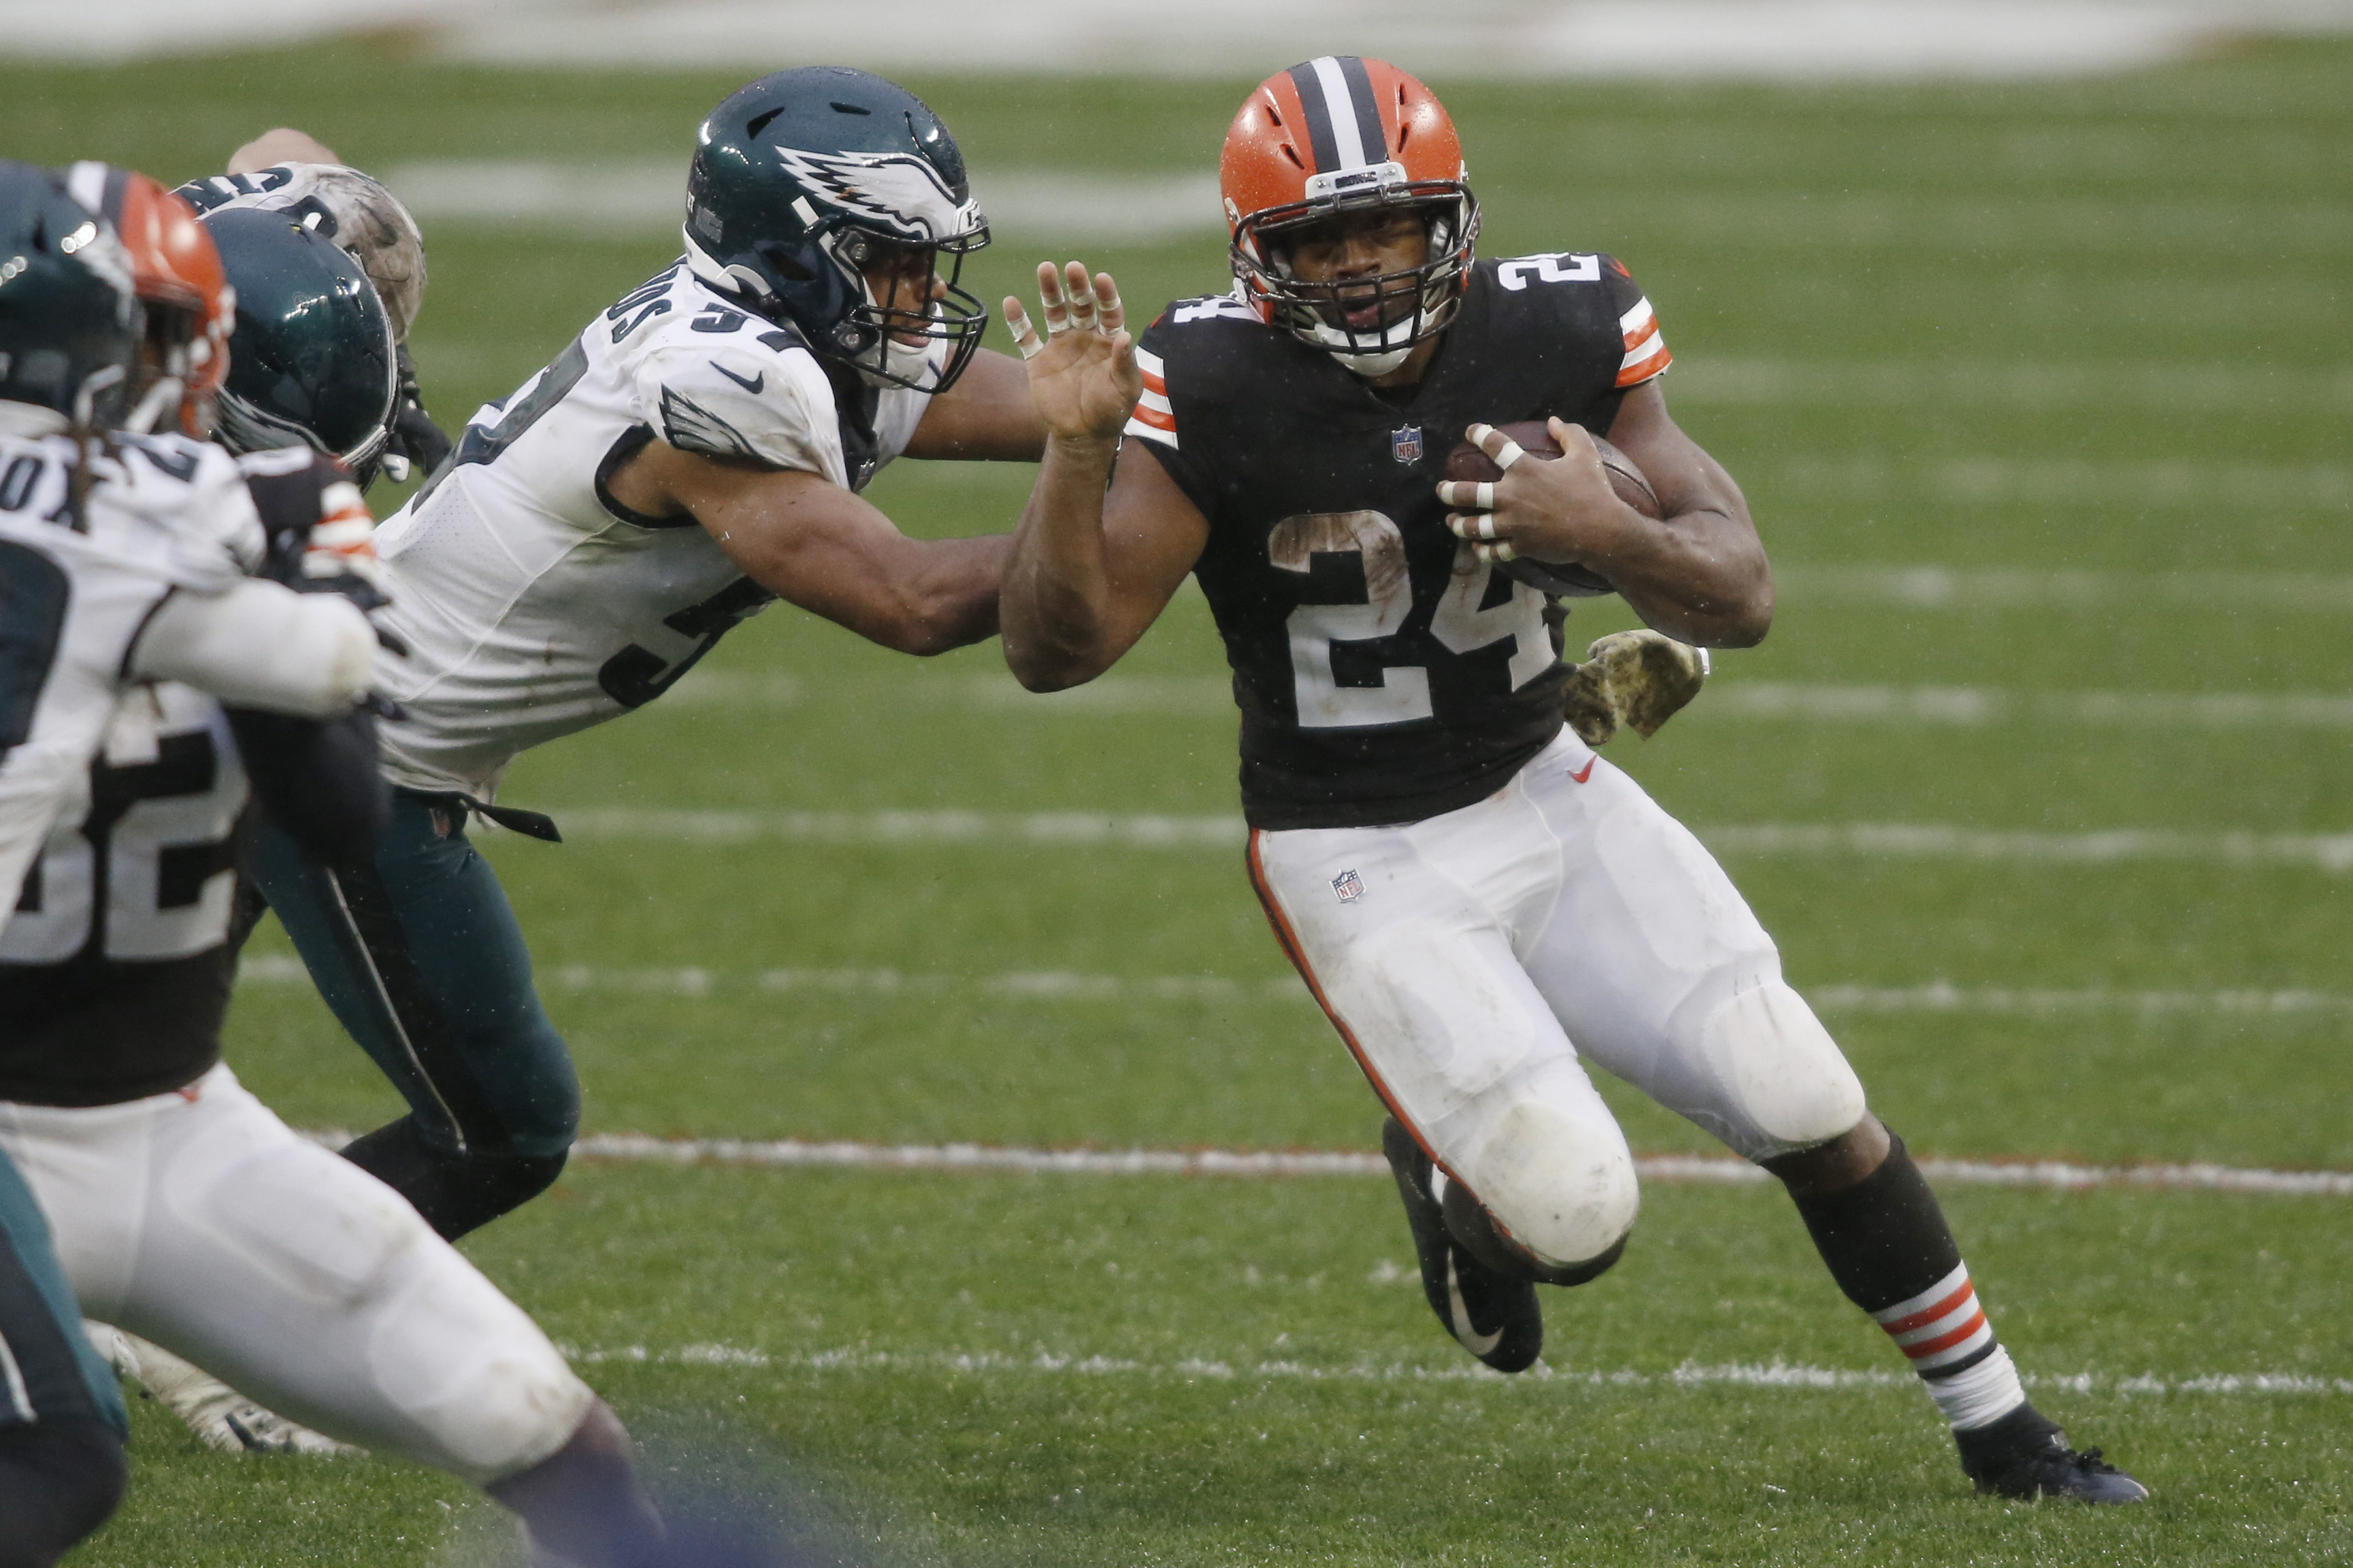 Cleveland Browns running back Nick Chubb (24) runs with the ball as Philadelphia Eagles linebacker T.J. Edwards (57) defends during the second half at FirstEnergy Stadium.